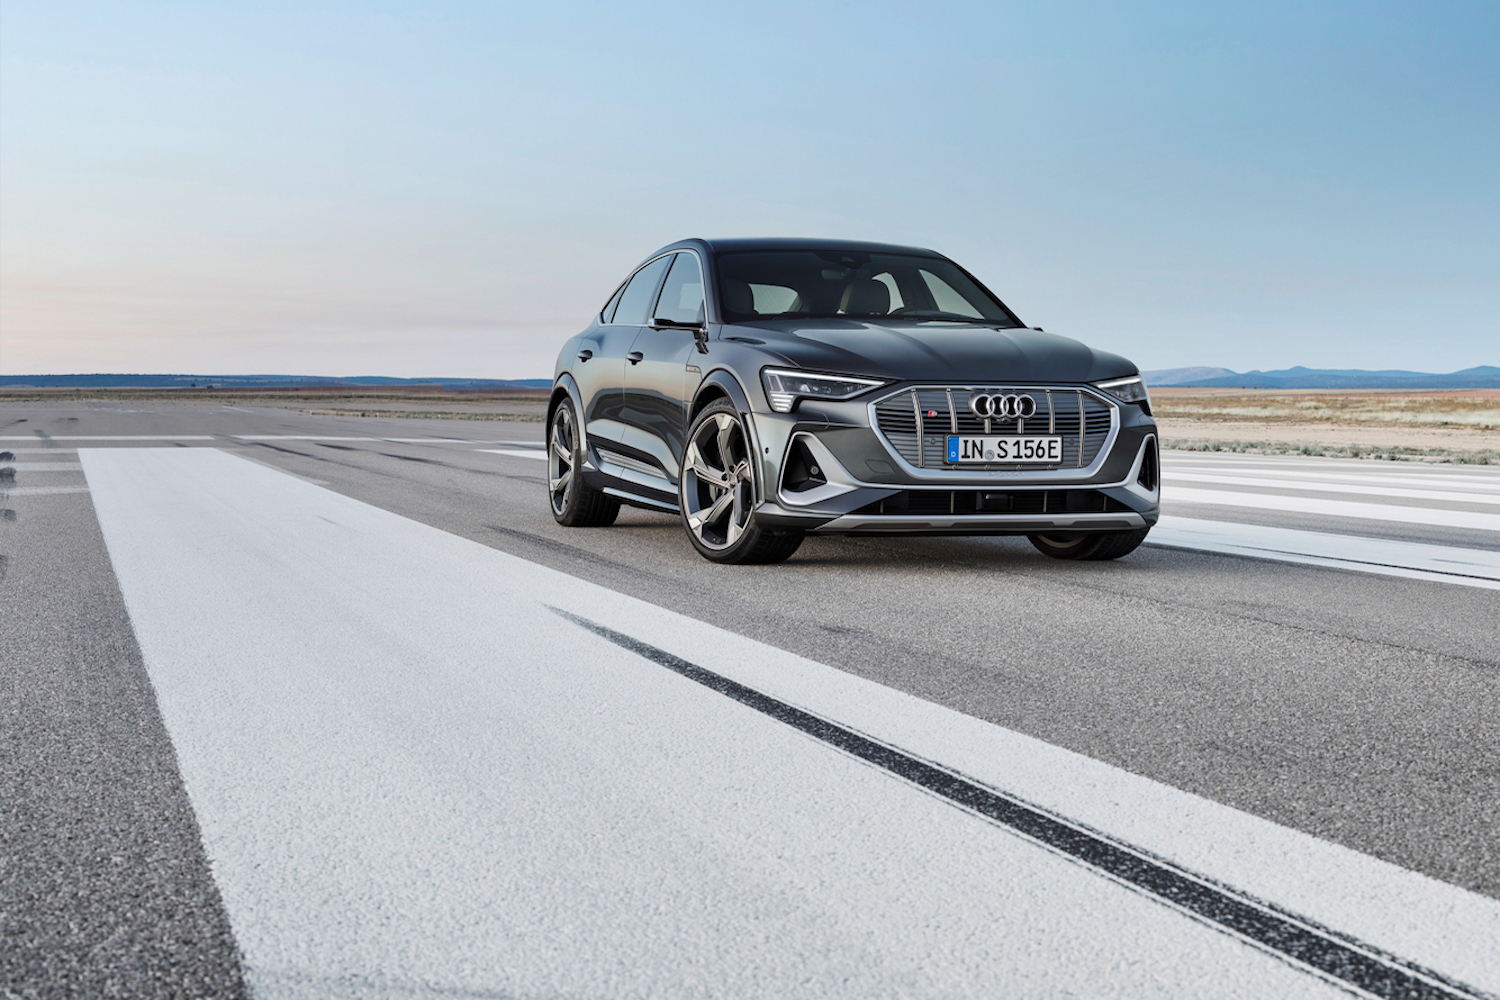 Car News | Audi adds more power for e-tron S models | CompleteCar.ie